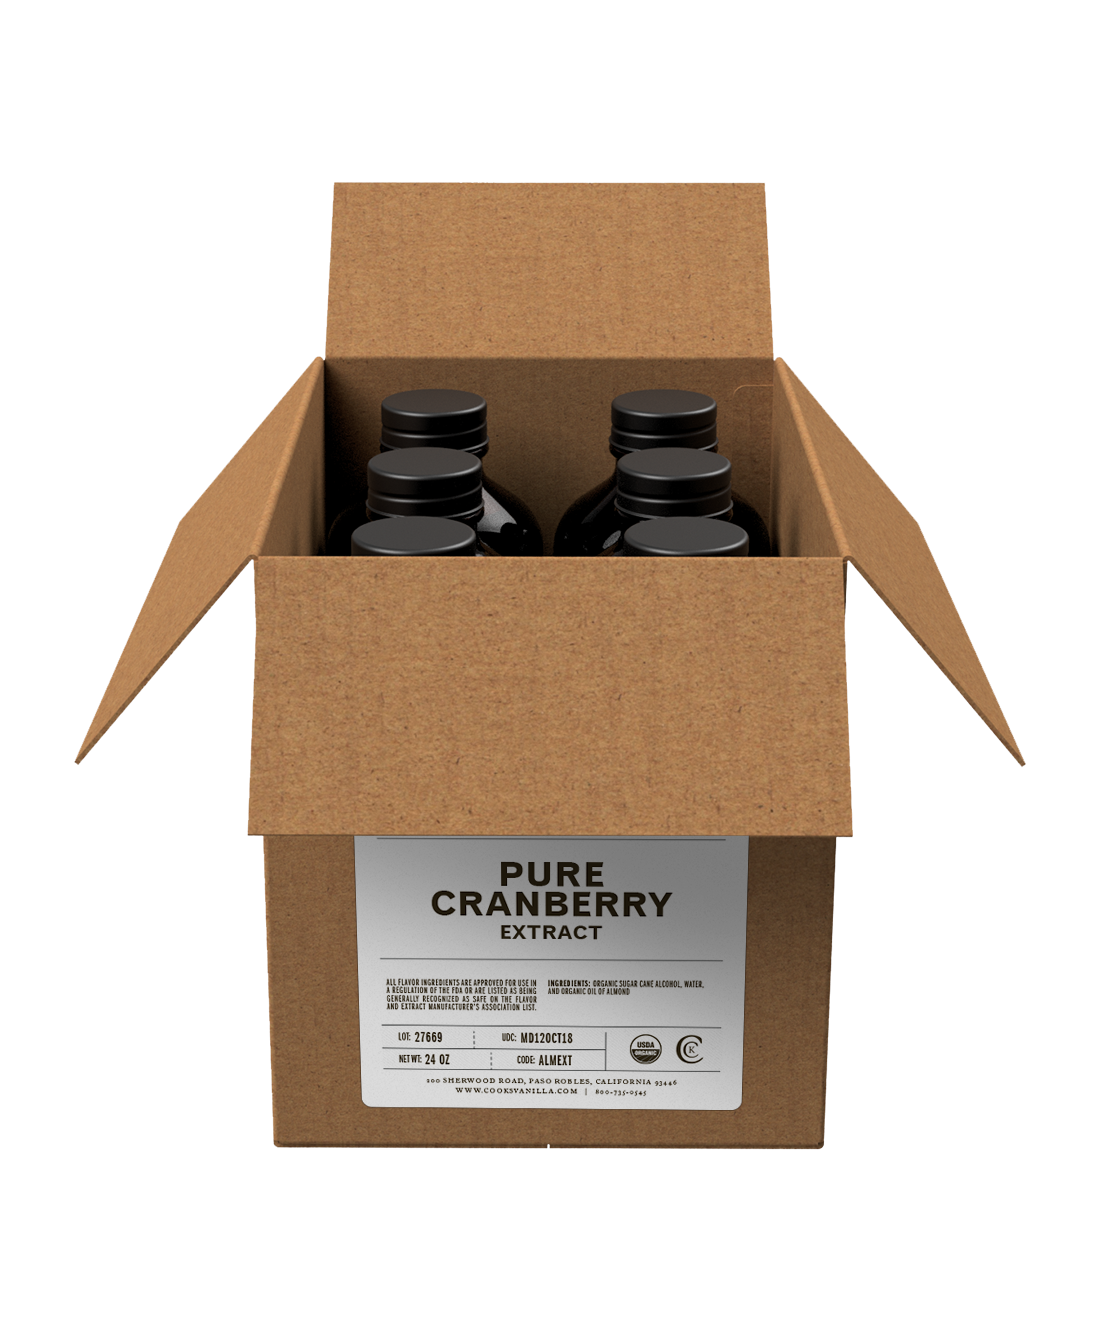 Flavoring | Cranberry Extract (Pure) | Packs and Cases